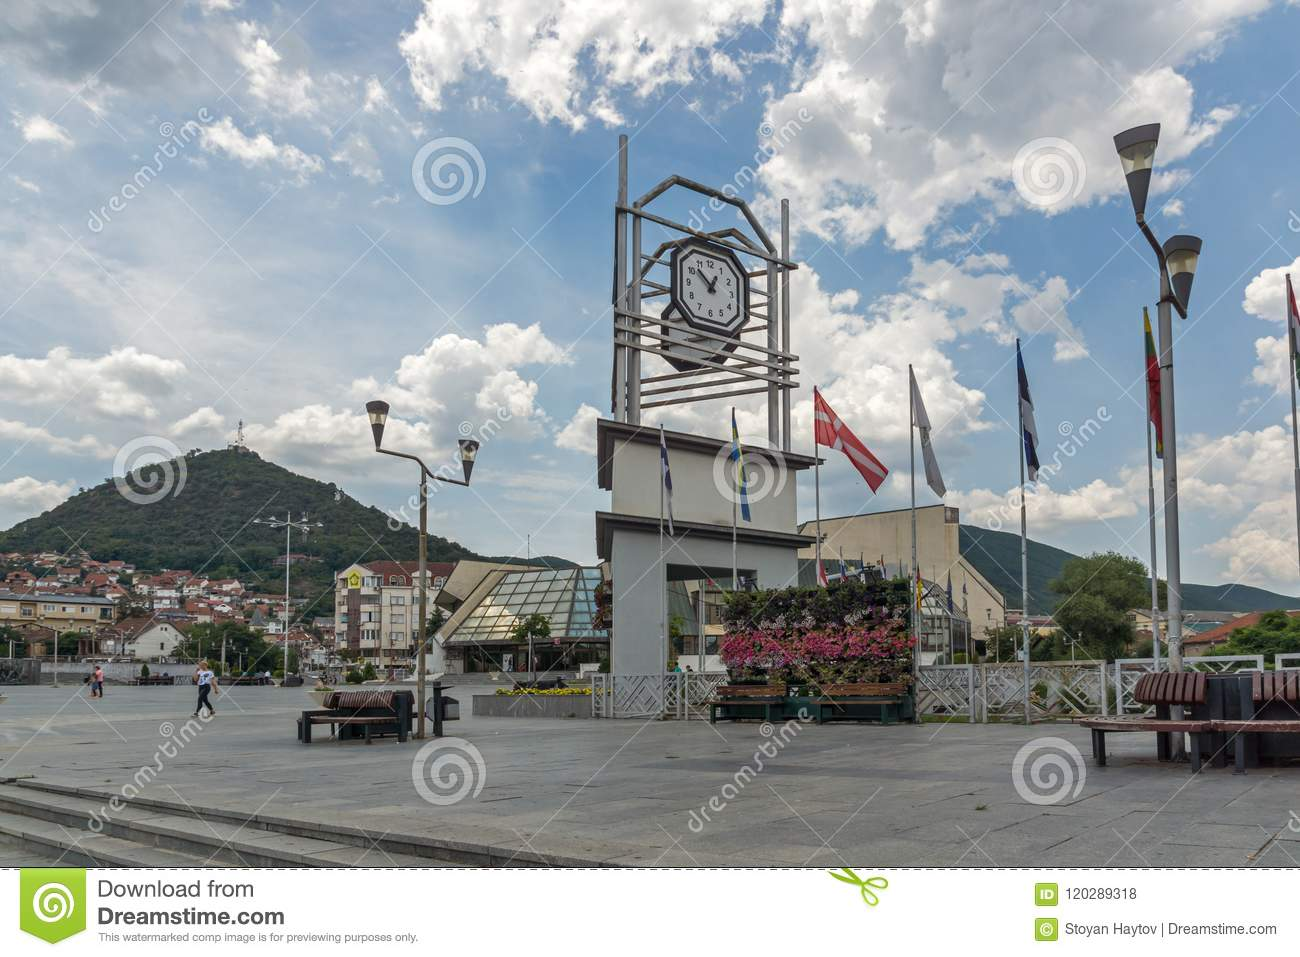 Clock Tower at the central square of town of Strumica, Republic of Macedonia